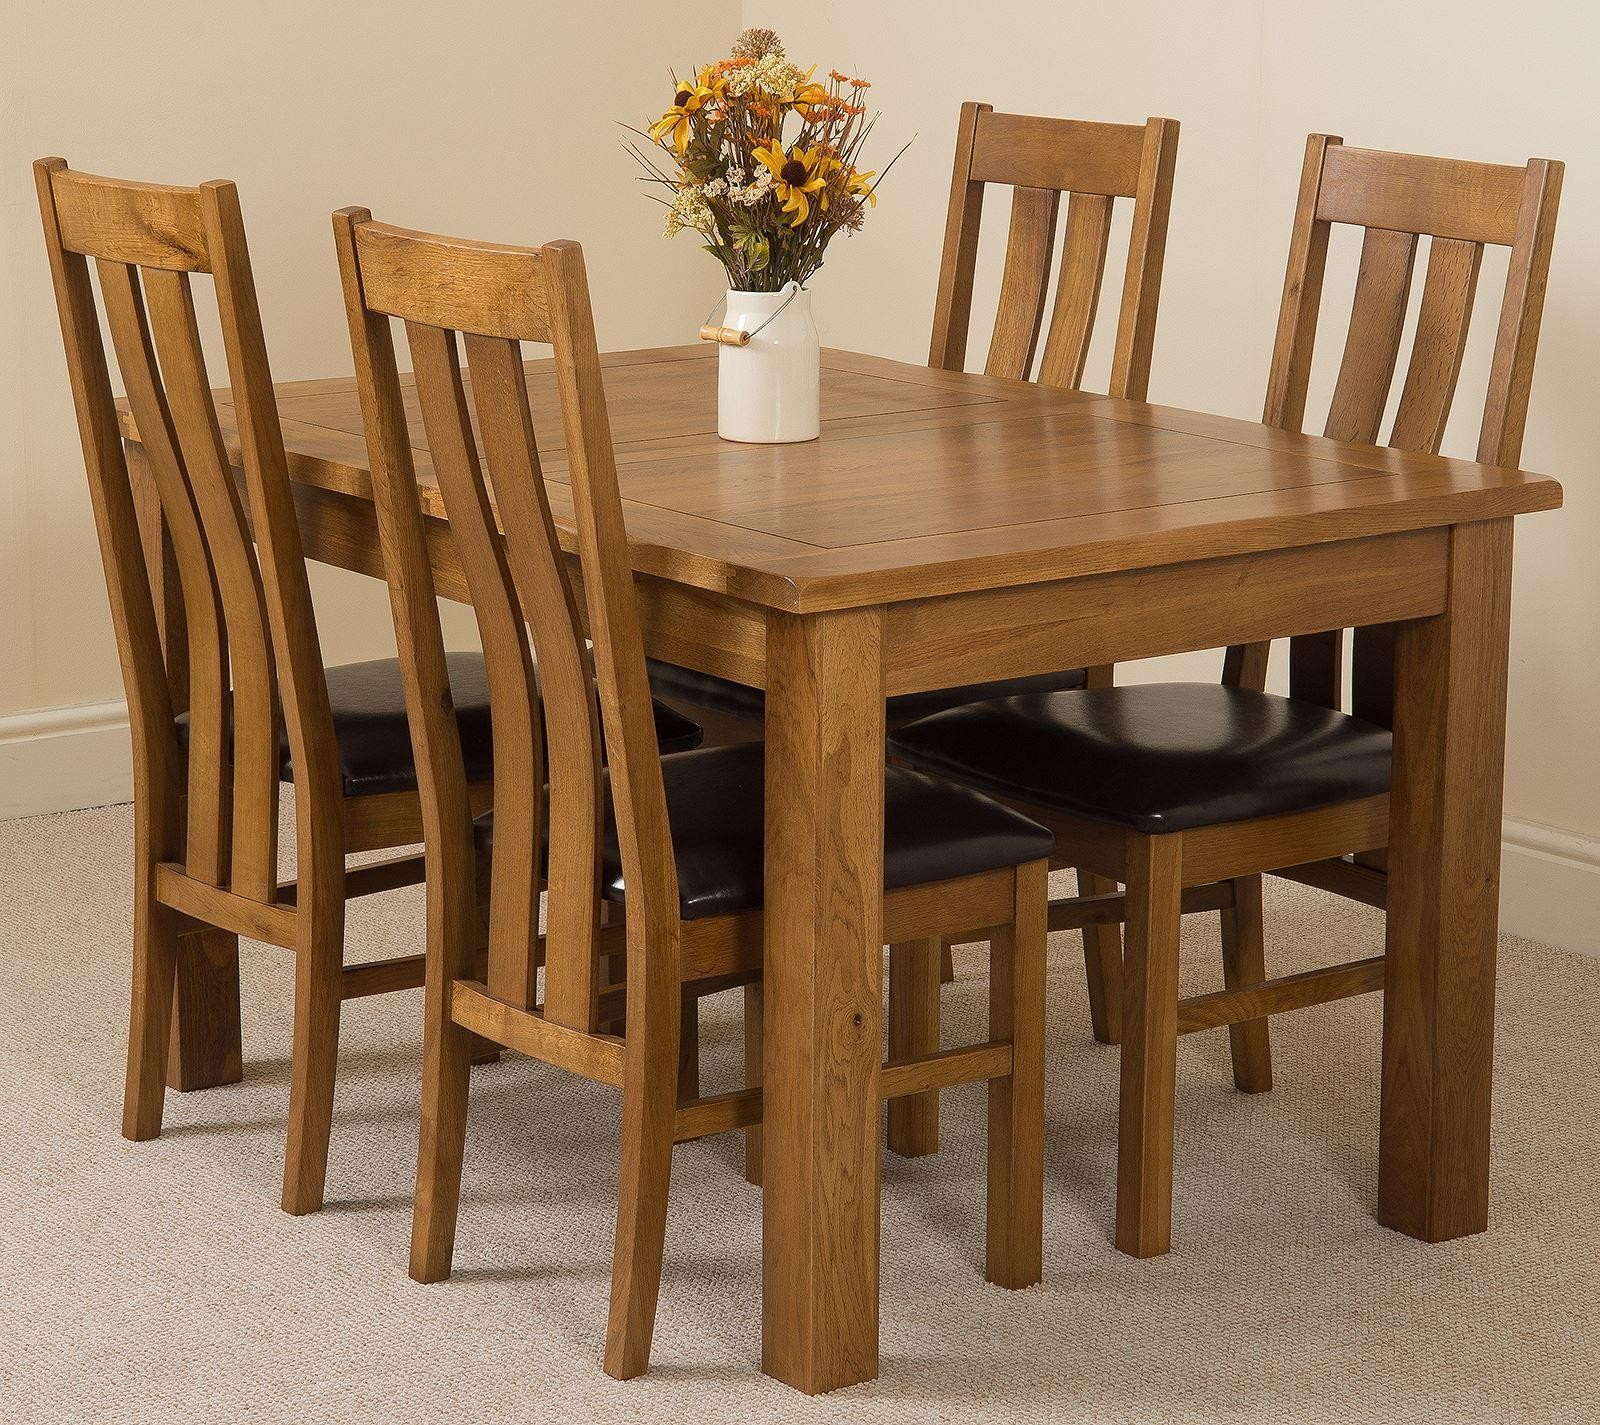 Cotswold Rustic Solid Oak 132cm-198cm Extending Farmhouse Dining Table with 4 Princeton Solid Oak Dining Chairs [Rustic Oak and Brown Leather]